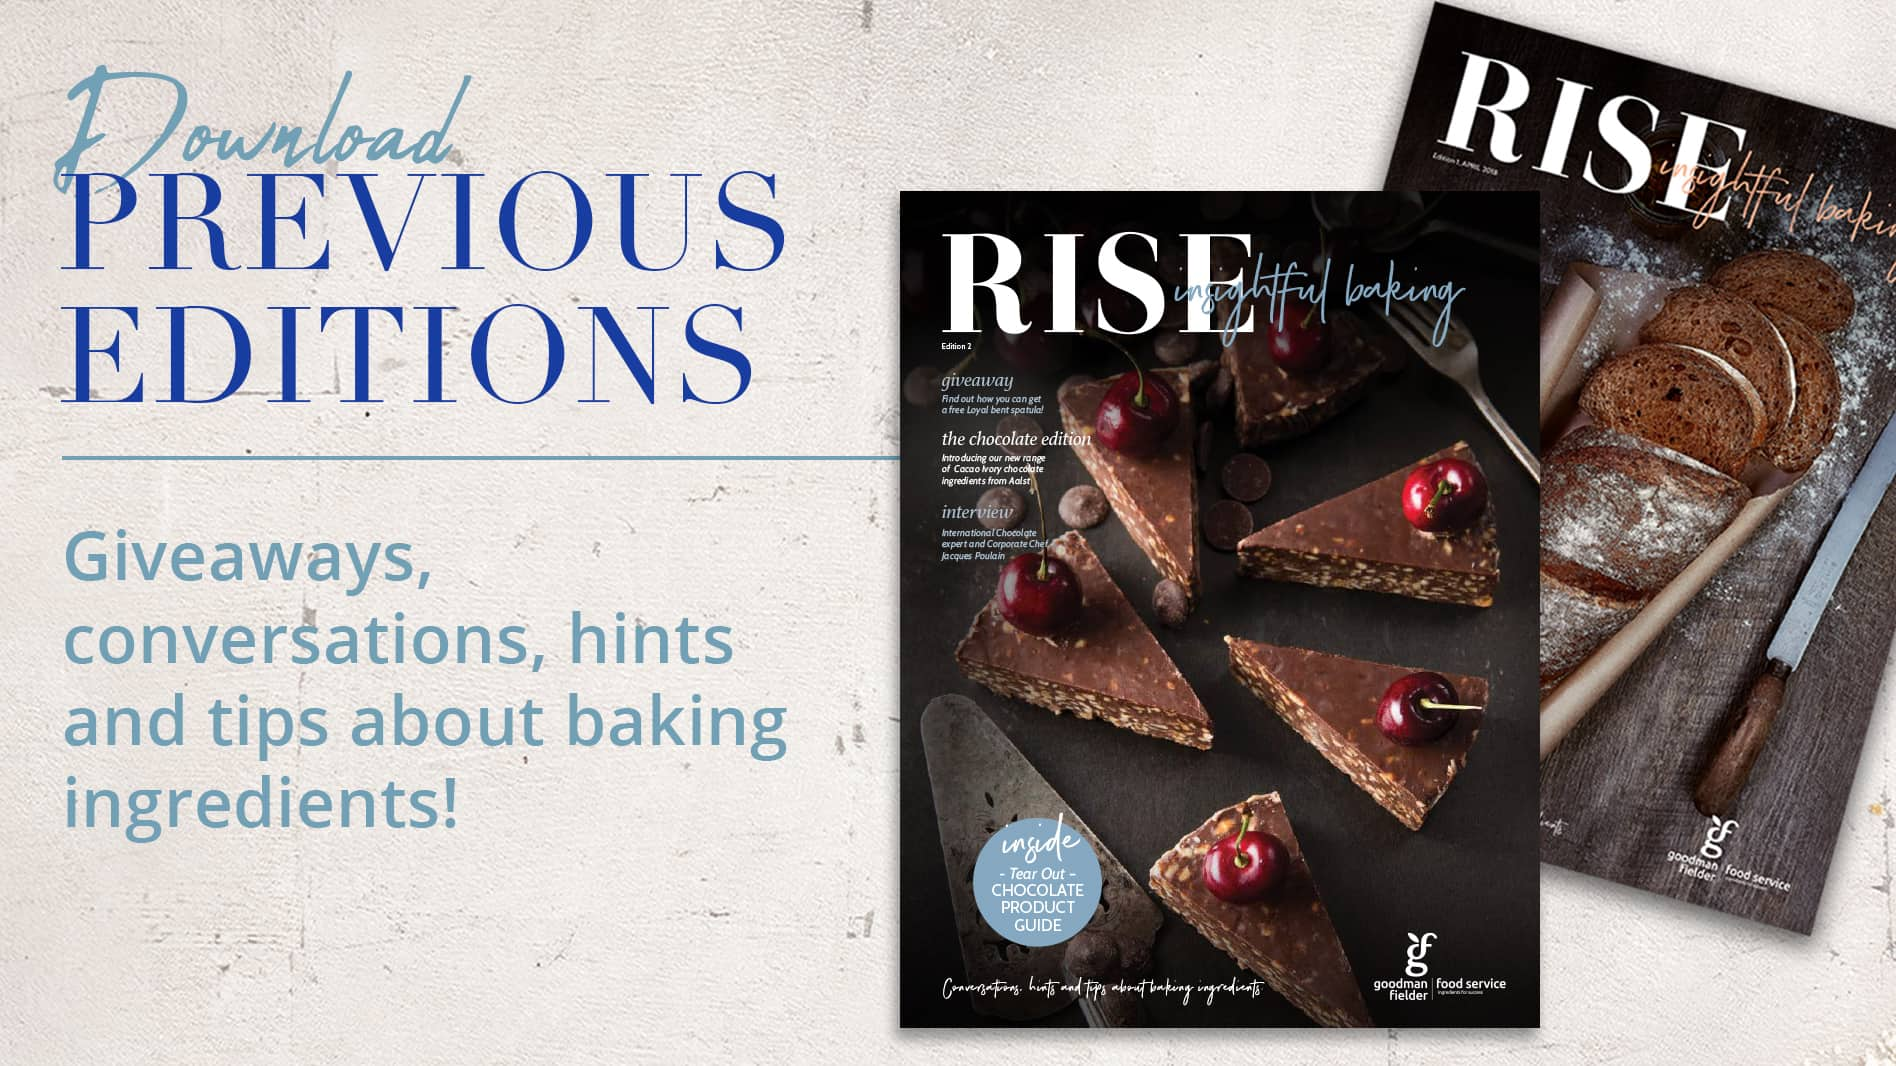 Rise Insightful Baking: Previous Editions